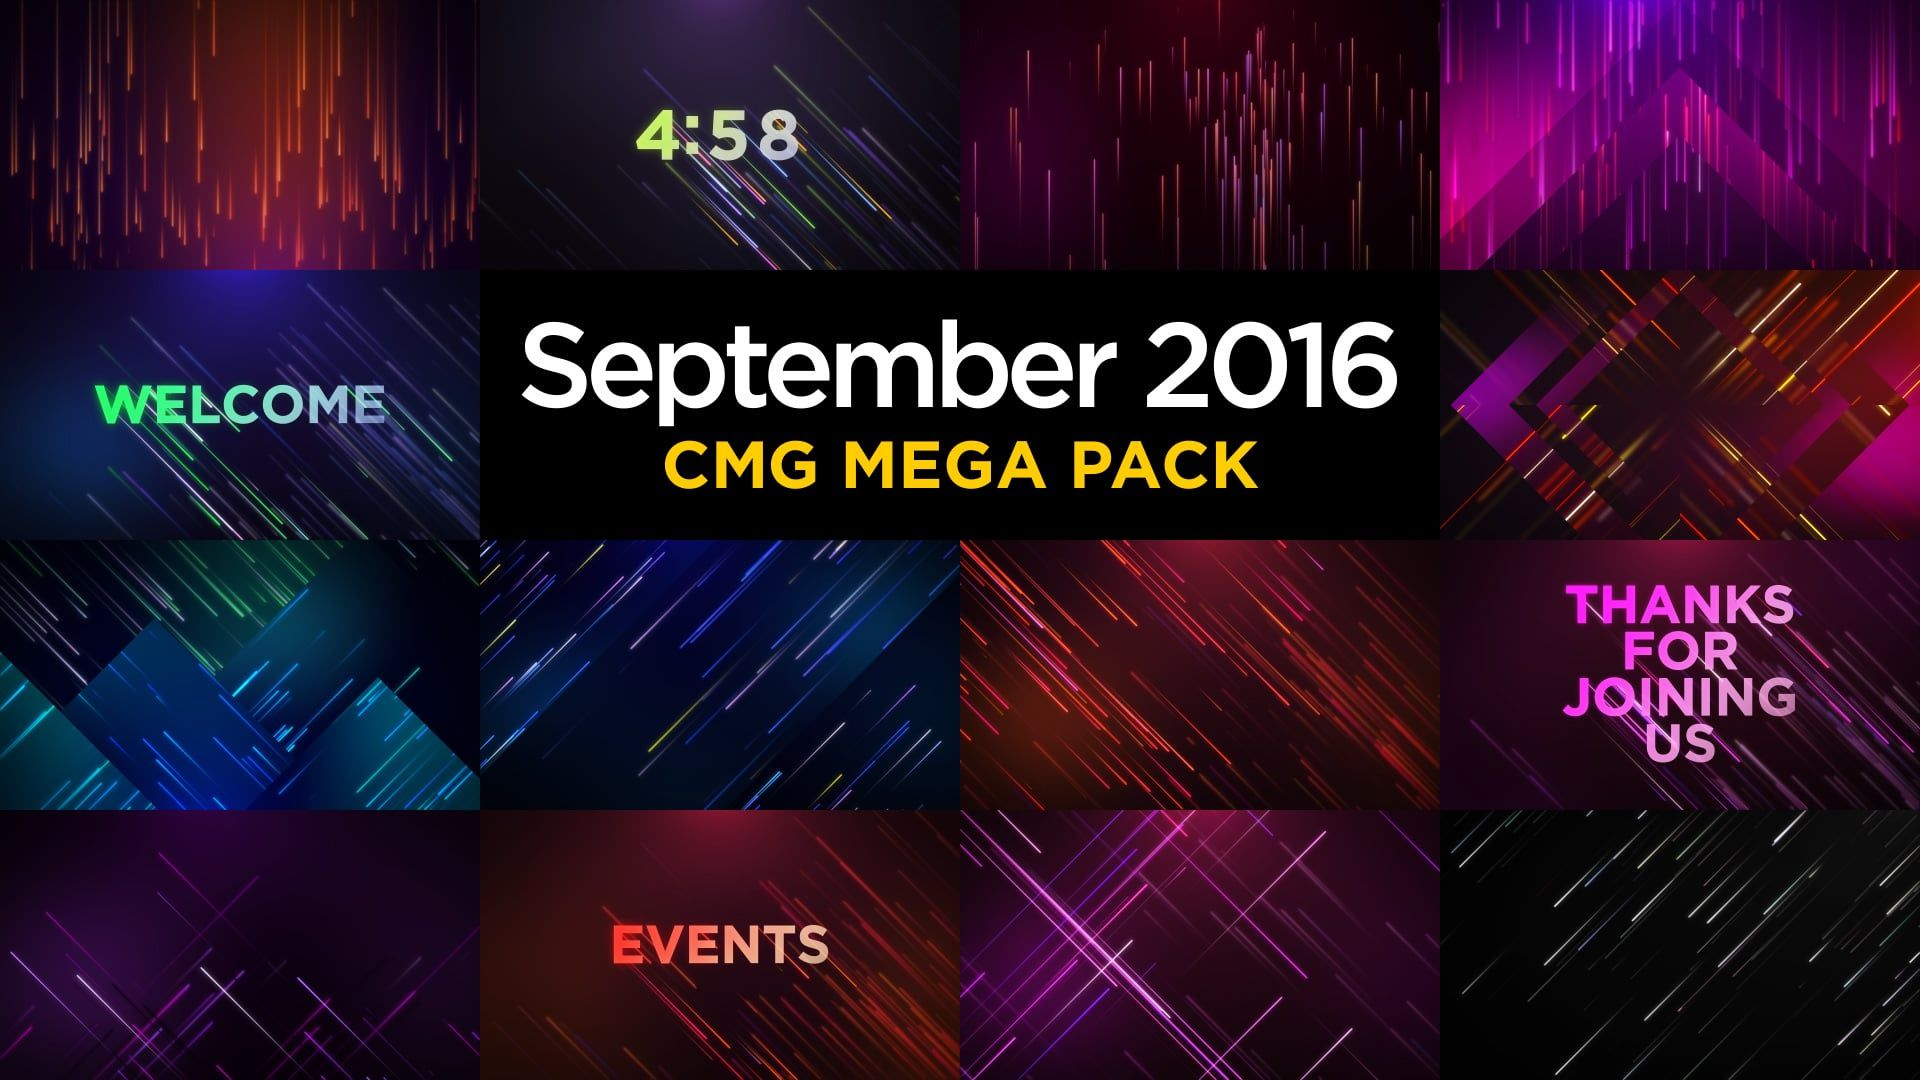 September 2016 CMG Mega Pack